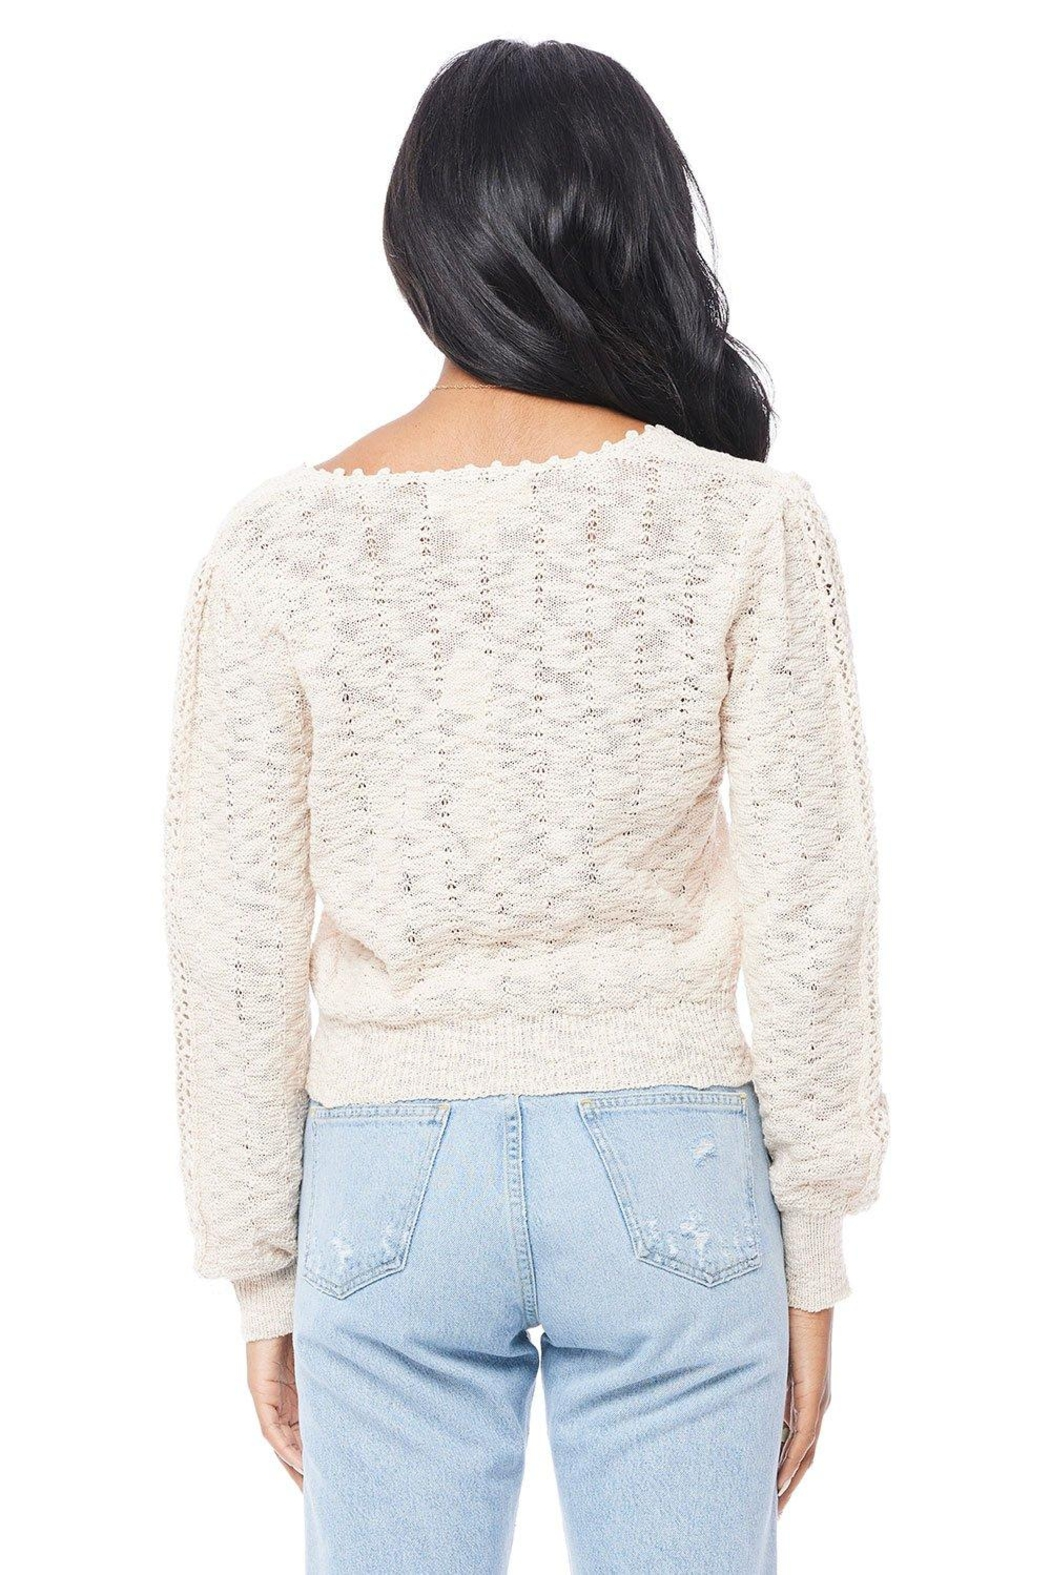 Saltwater Luxe Hudson Sweater - Side Cropped Image